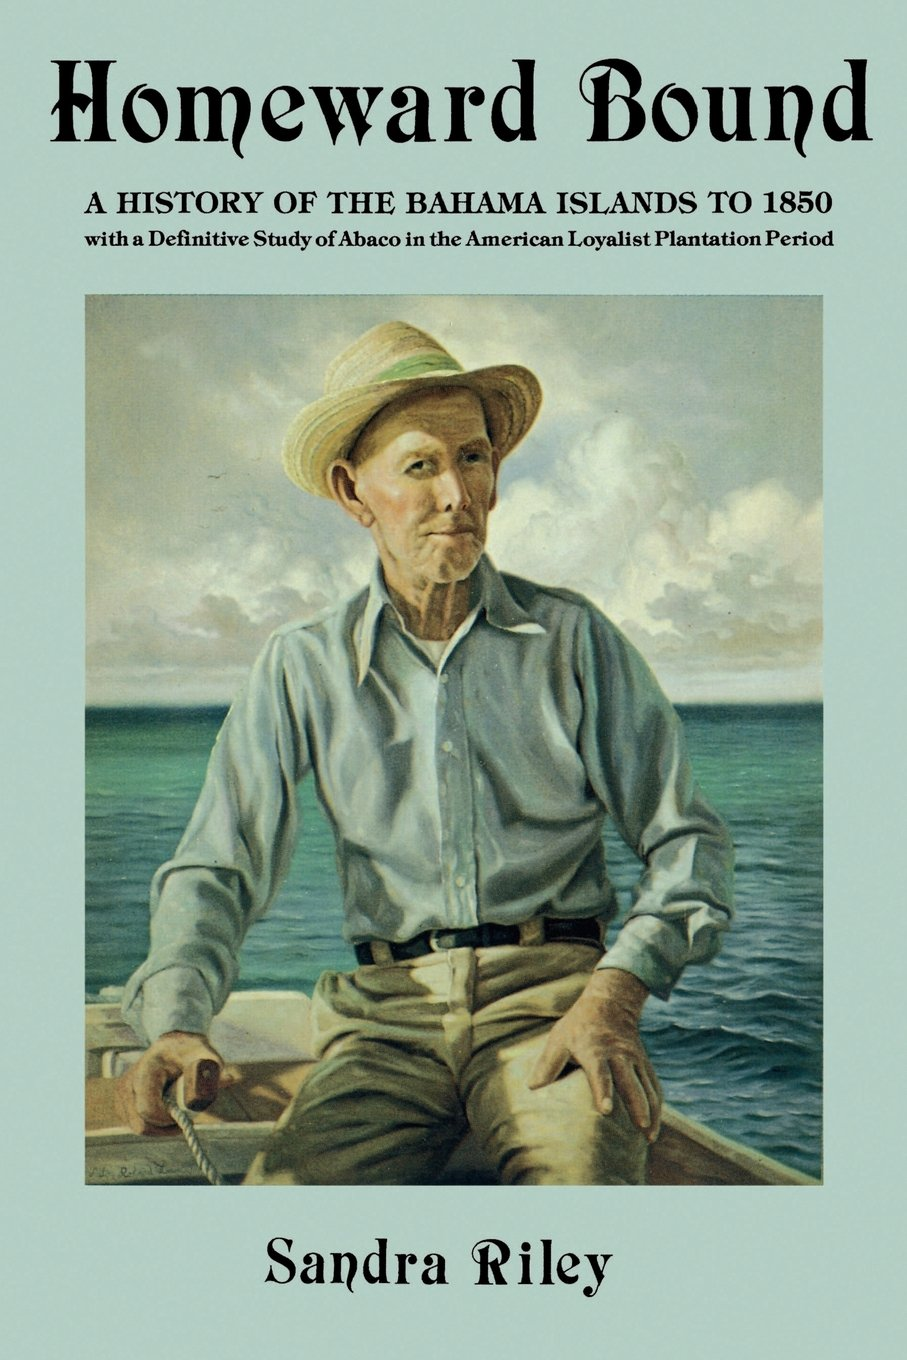 Download Homeward Bound: A History of the Bahama Islands to 1850 with a Definitive Study of Abaco in the American Loyalist Plantation Period ebook